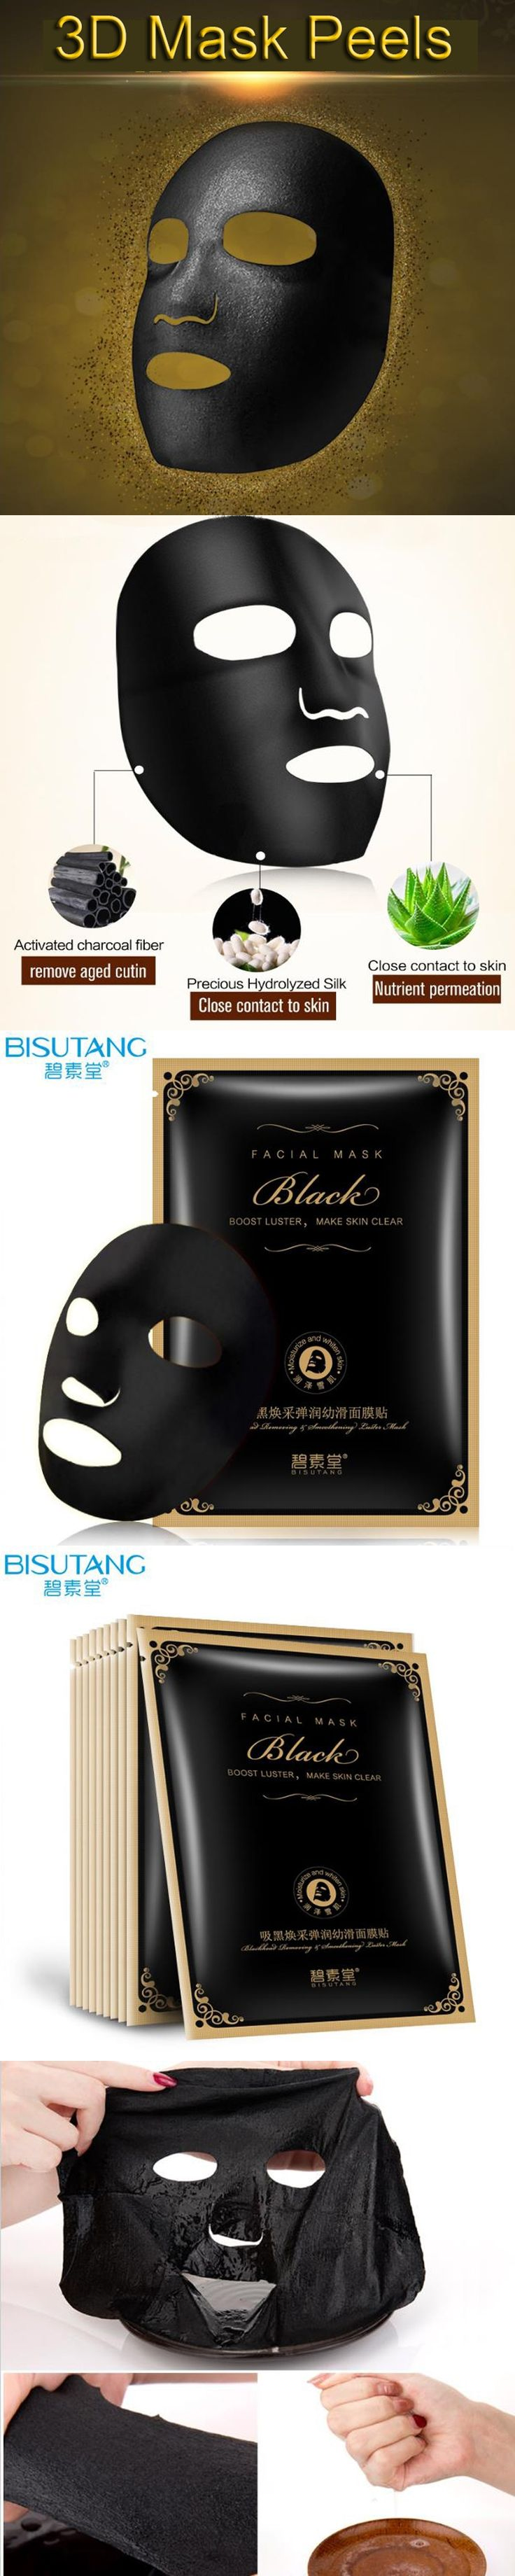 BISUTANG Black Mask Whitening Cream Face Care Suction Facial Mask Remove blackheads Remover Acne Treatments Cleaner  tony moly